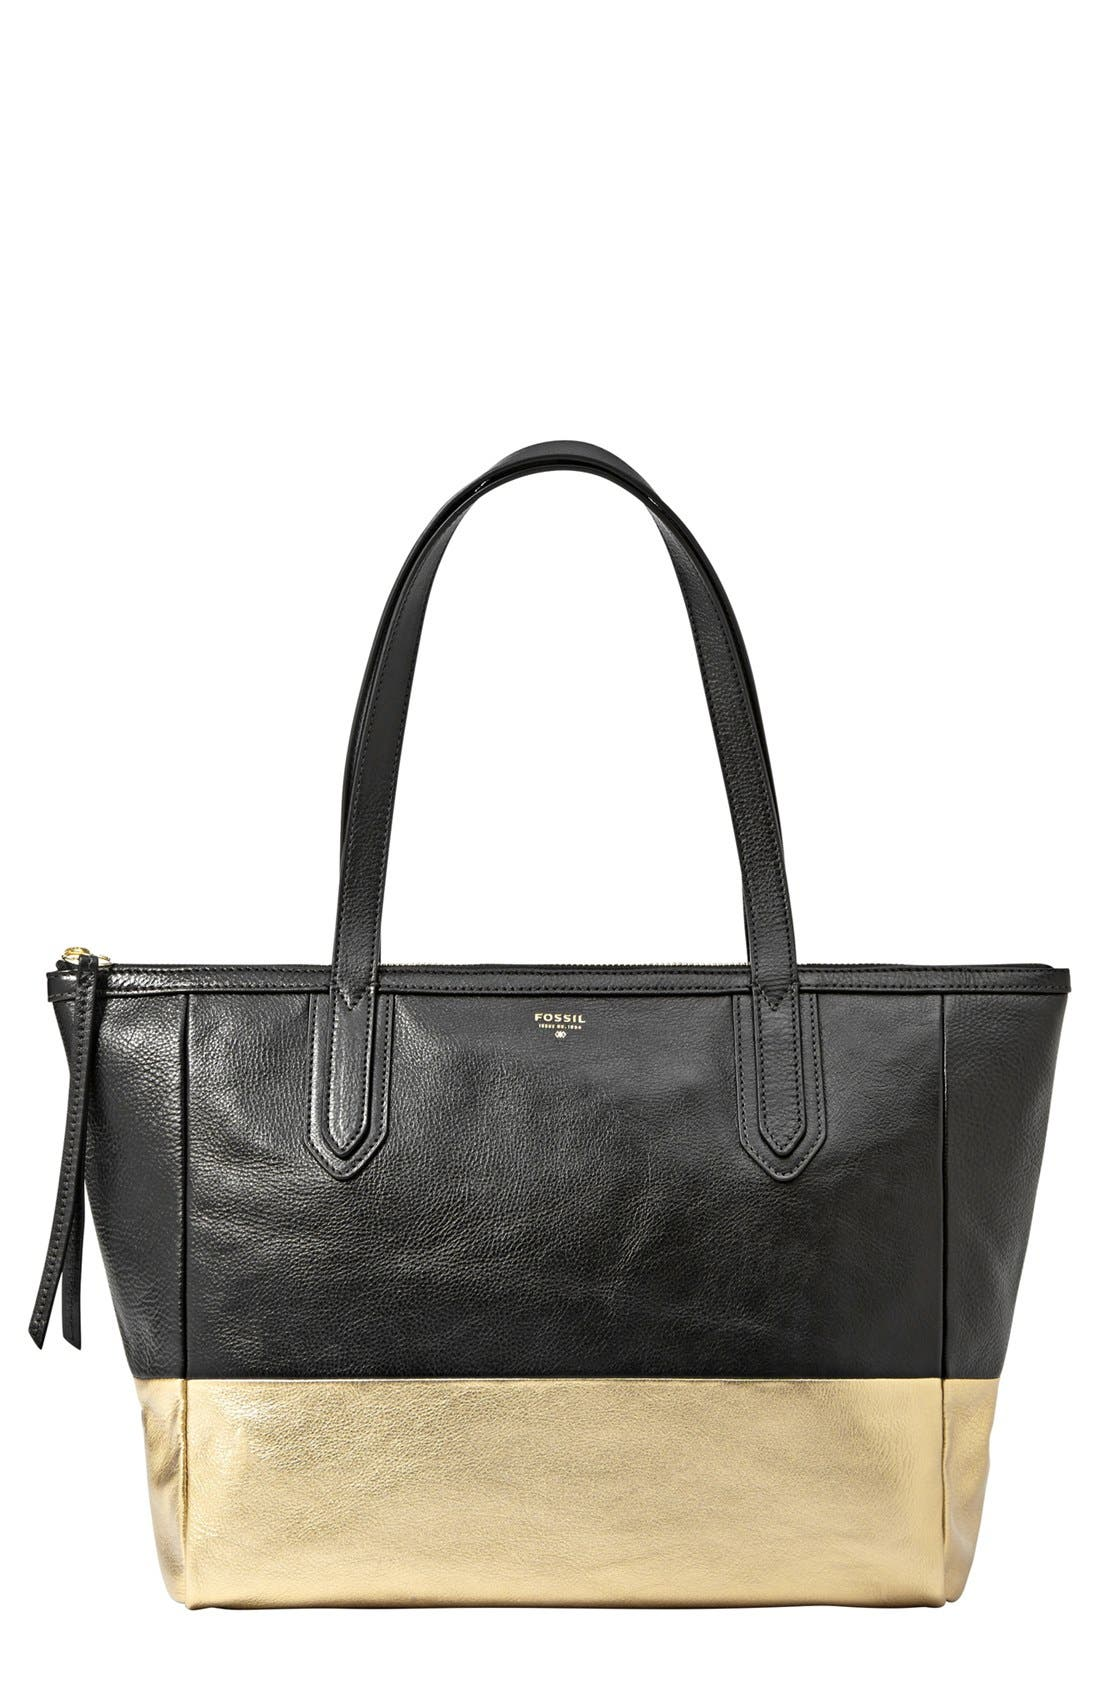 Main Image - Fossil 'Sydney - Metallic' Leather Shopper